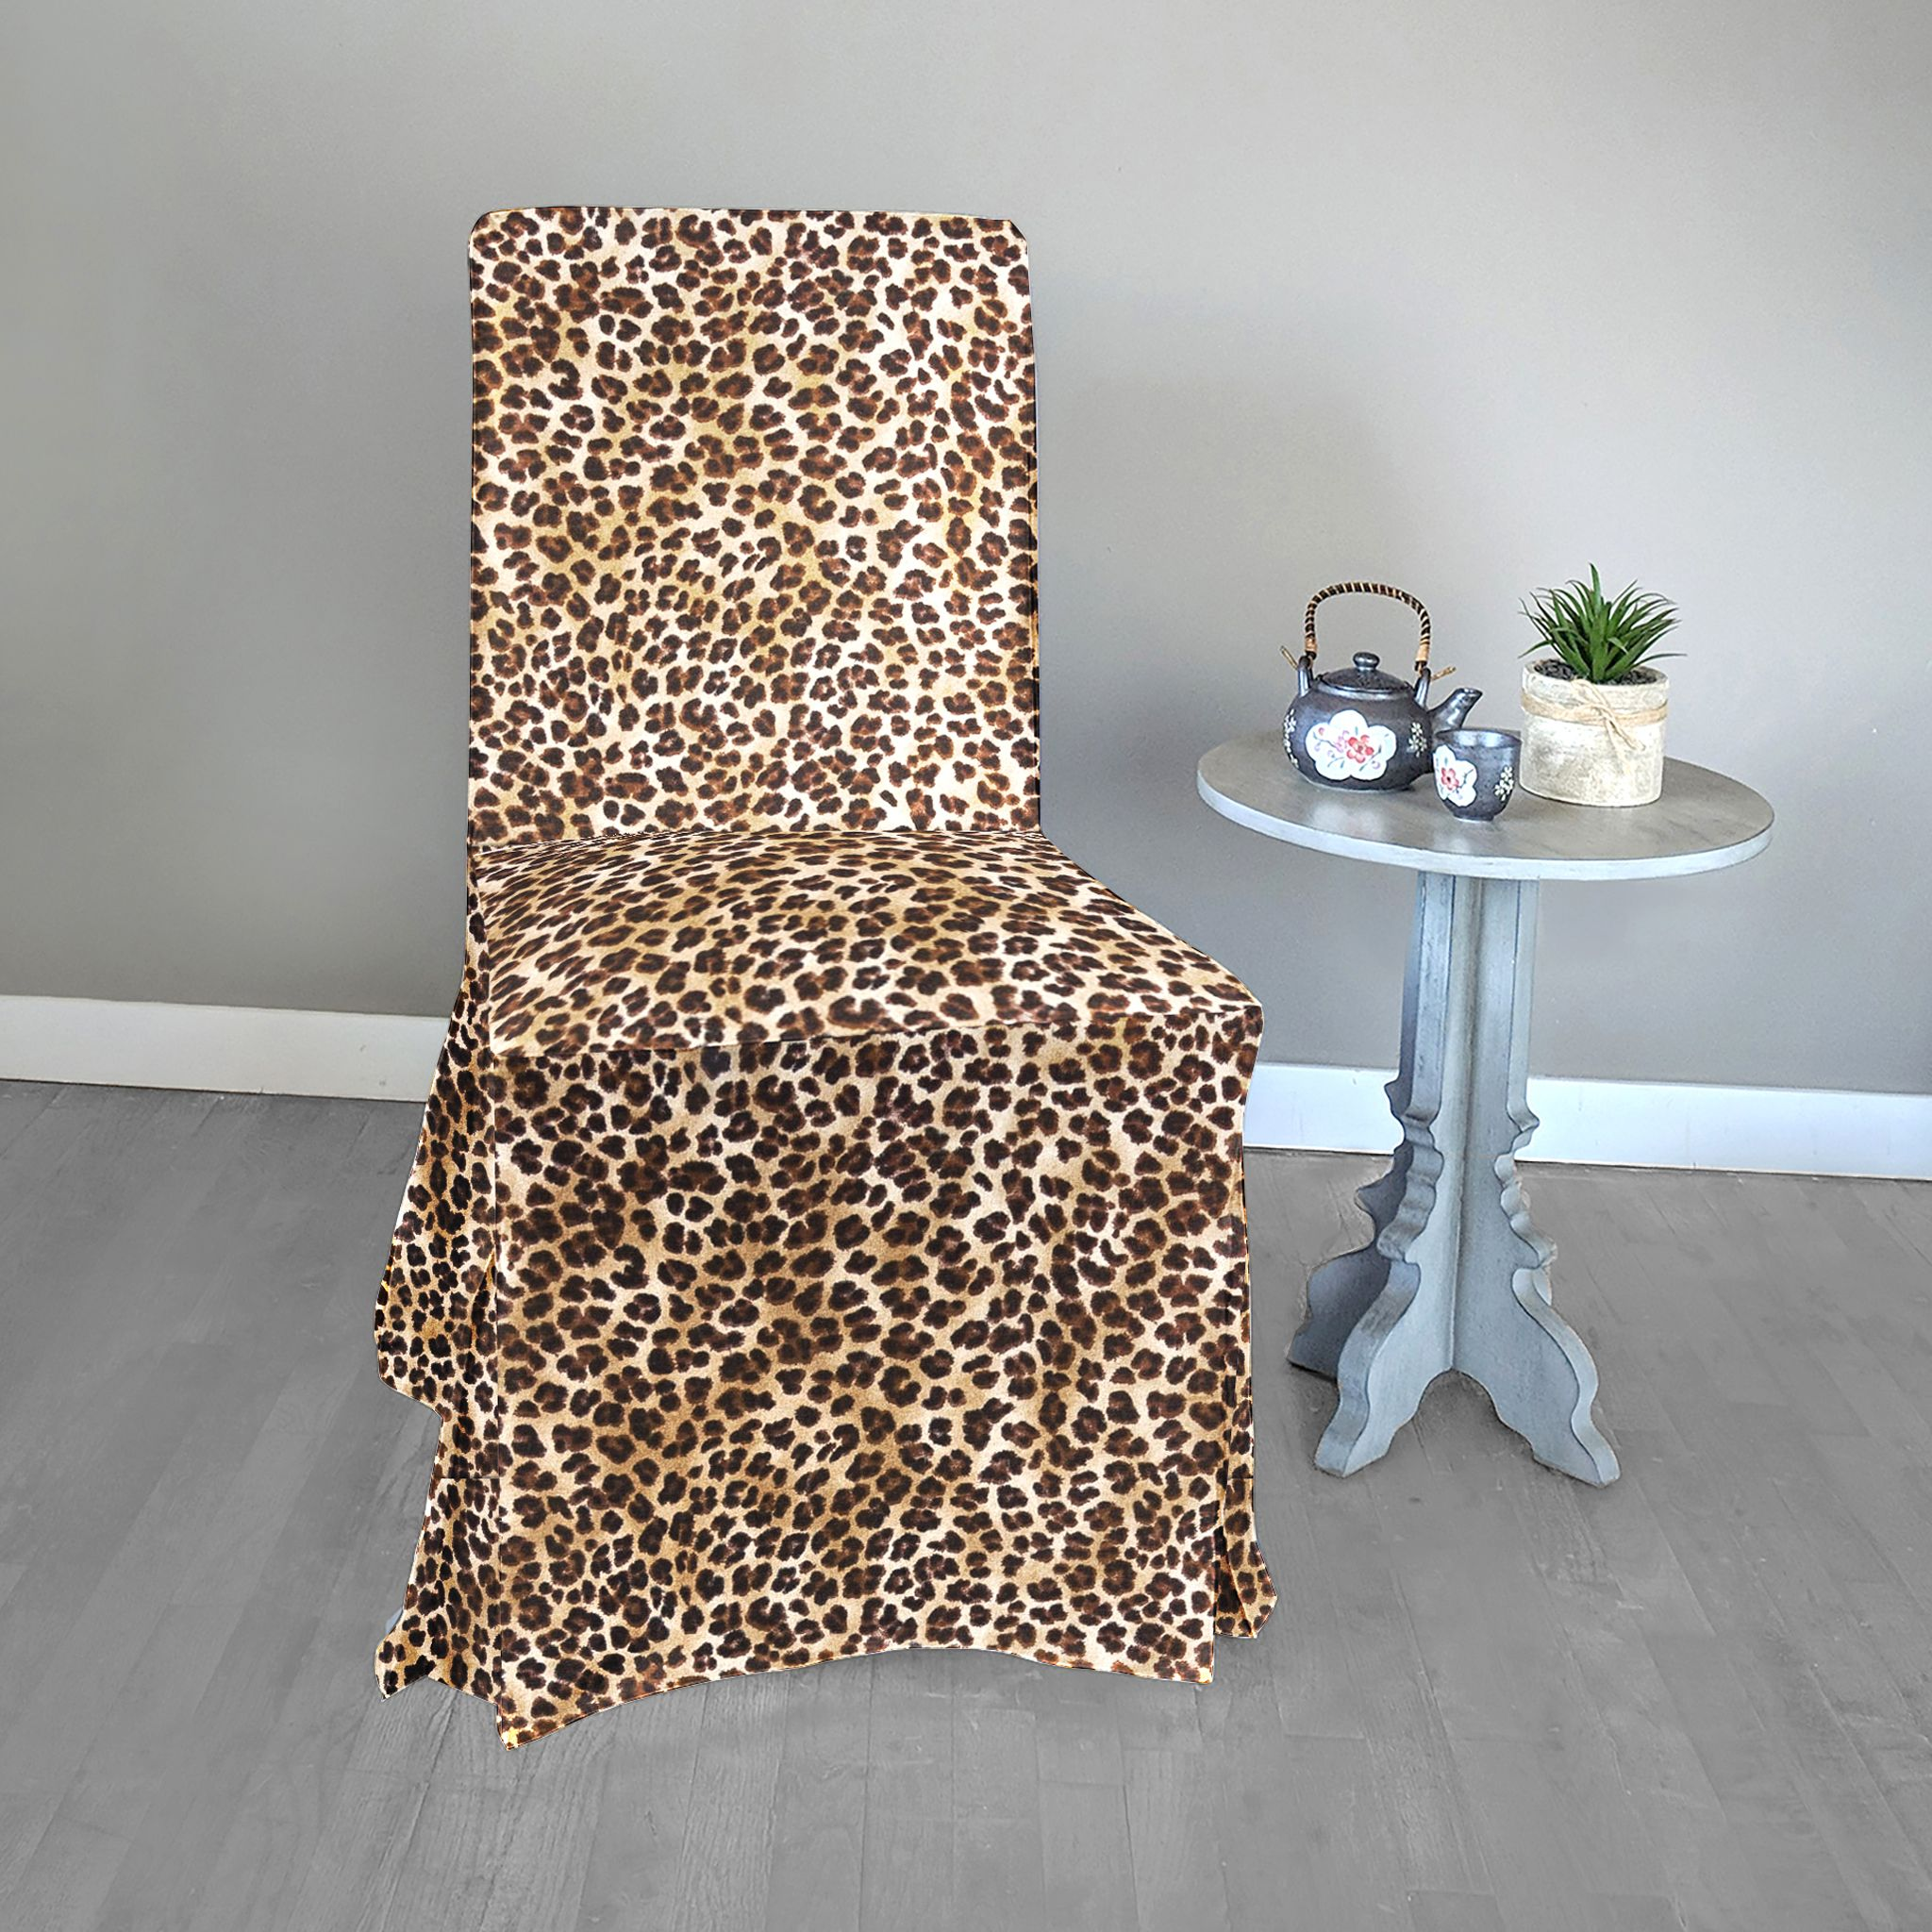 Leopard Print IKEA Henriksdal Dining Chair Cover in 2020